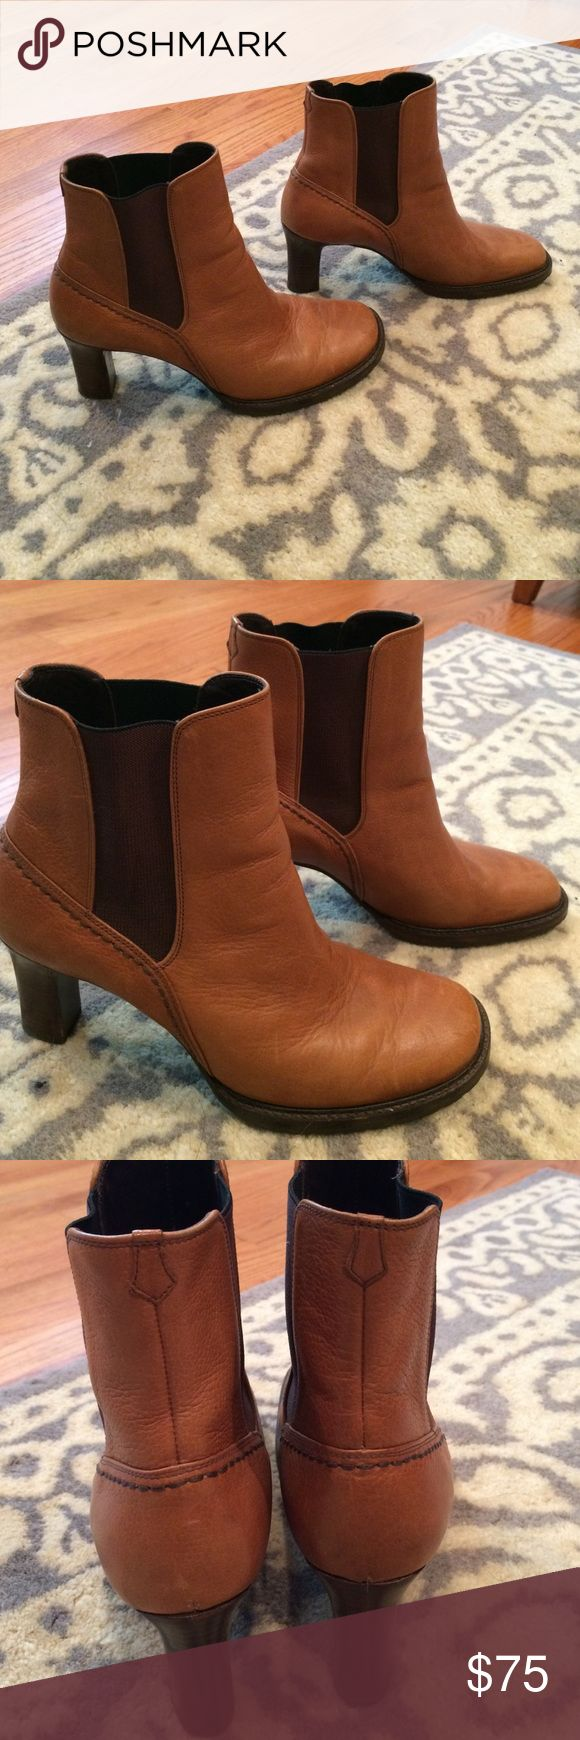 Cole Haan Tan Chelsea boot In excellent condition!  Perfect for a skirt or jeans!  Great addition to any fall wardrobe!  Tan leather with a wood stacked heel.  Size 8.5 Cole Haan Shoes Ankle Boots & Booties